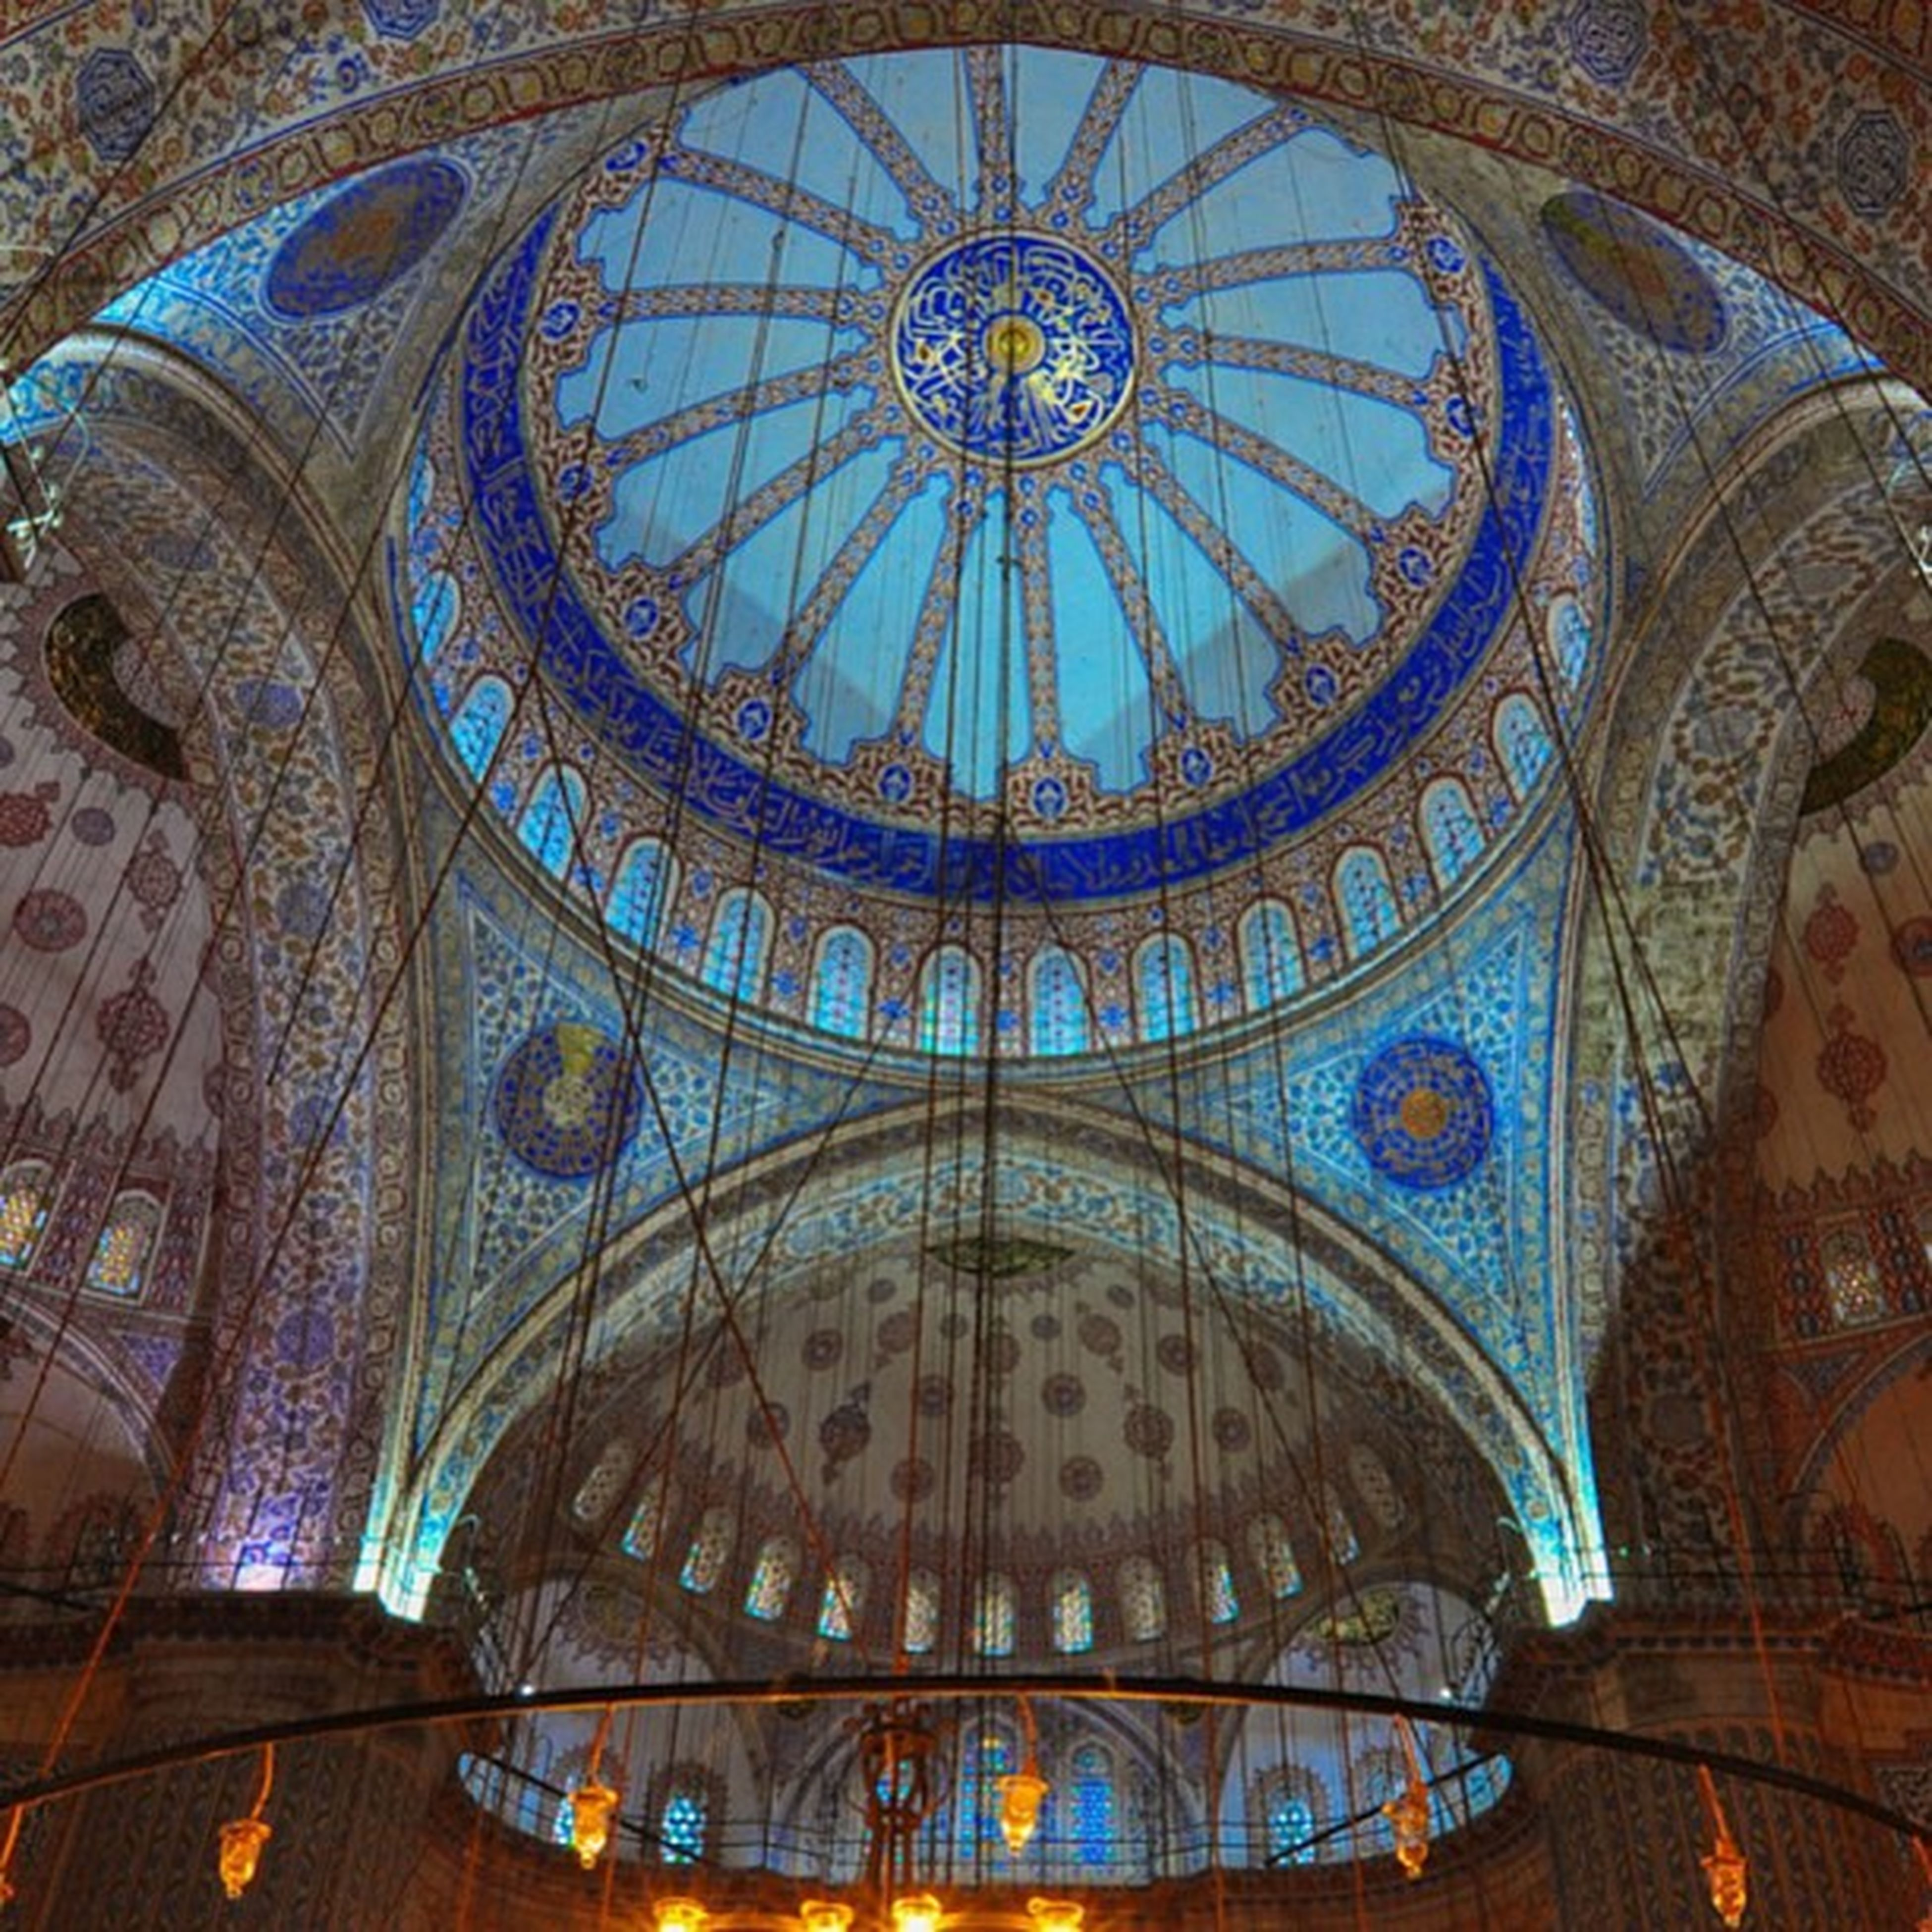 indoors, architecture, built structure, low angle view, ceiling, famous place, architectural feature, dome, pattern, travel destinations, arch, design, ornate, tourism, travel, international landmark, place of worship, cathedral, church, religion